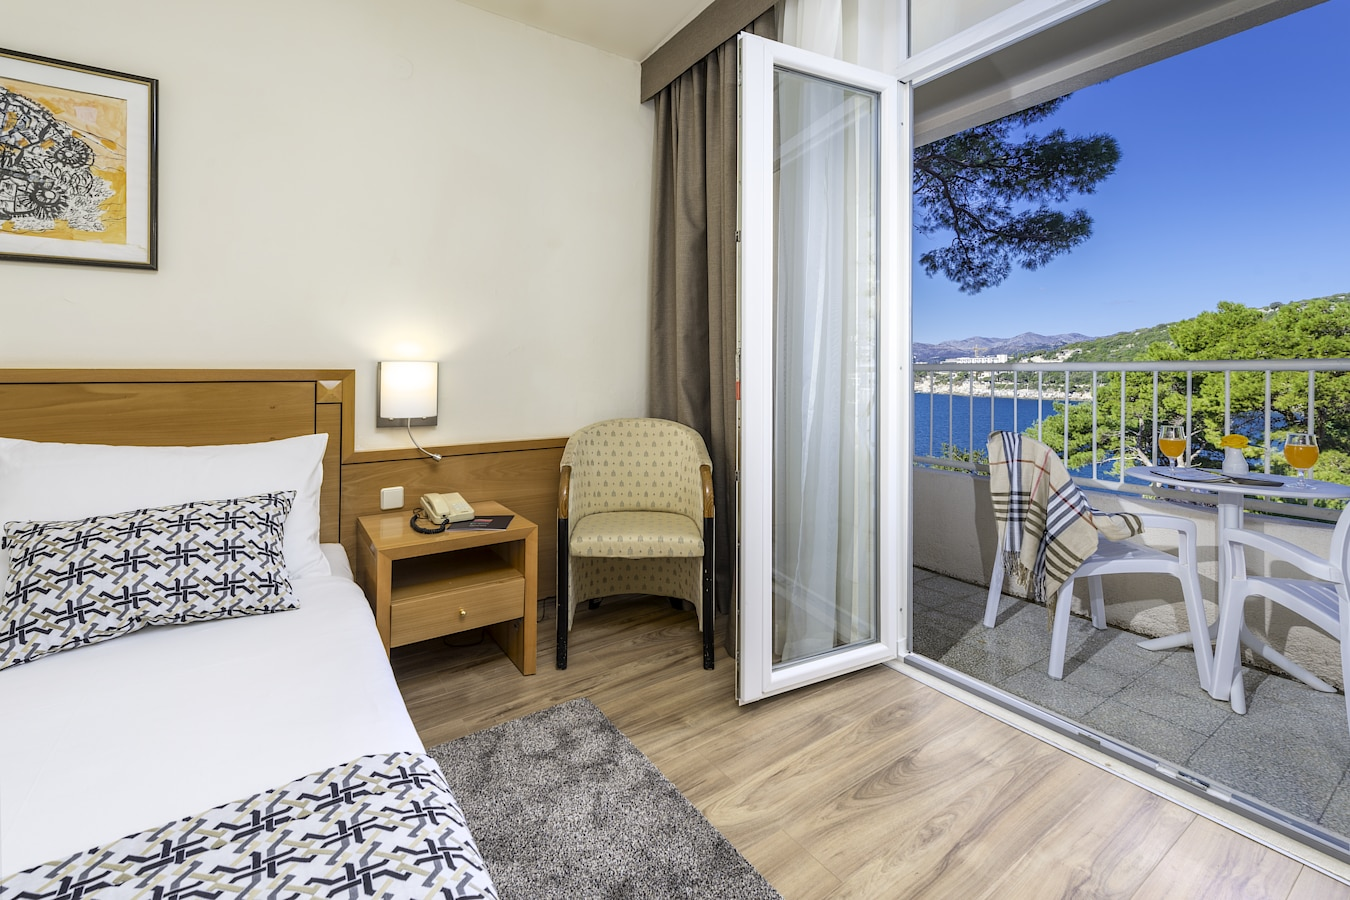 splendid-hotel-dubrovnik-balcony-double-room-sea-view.jpg